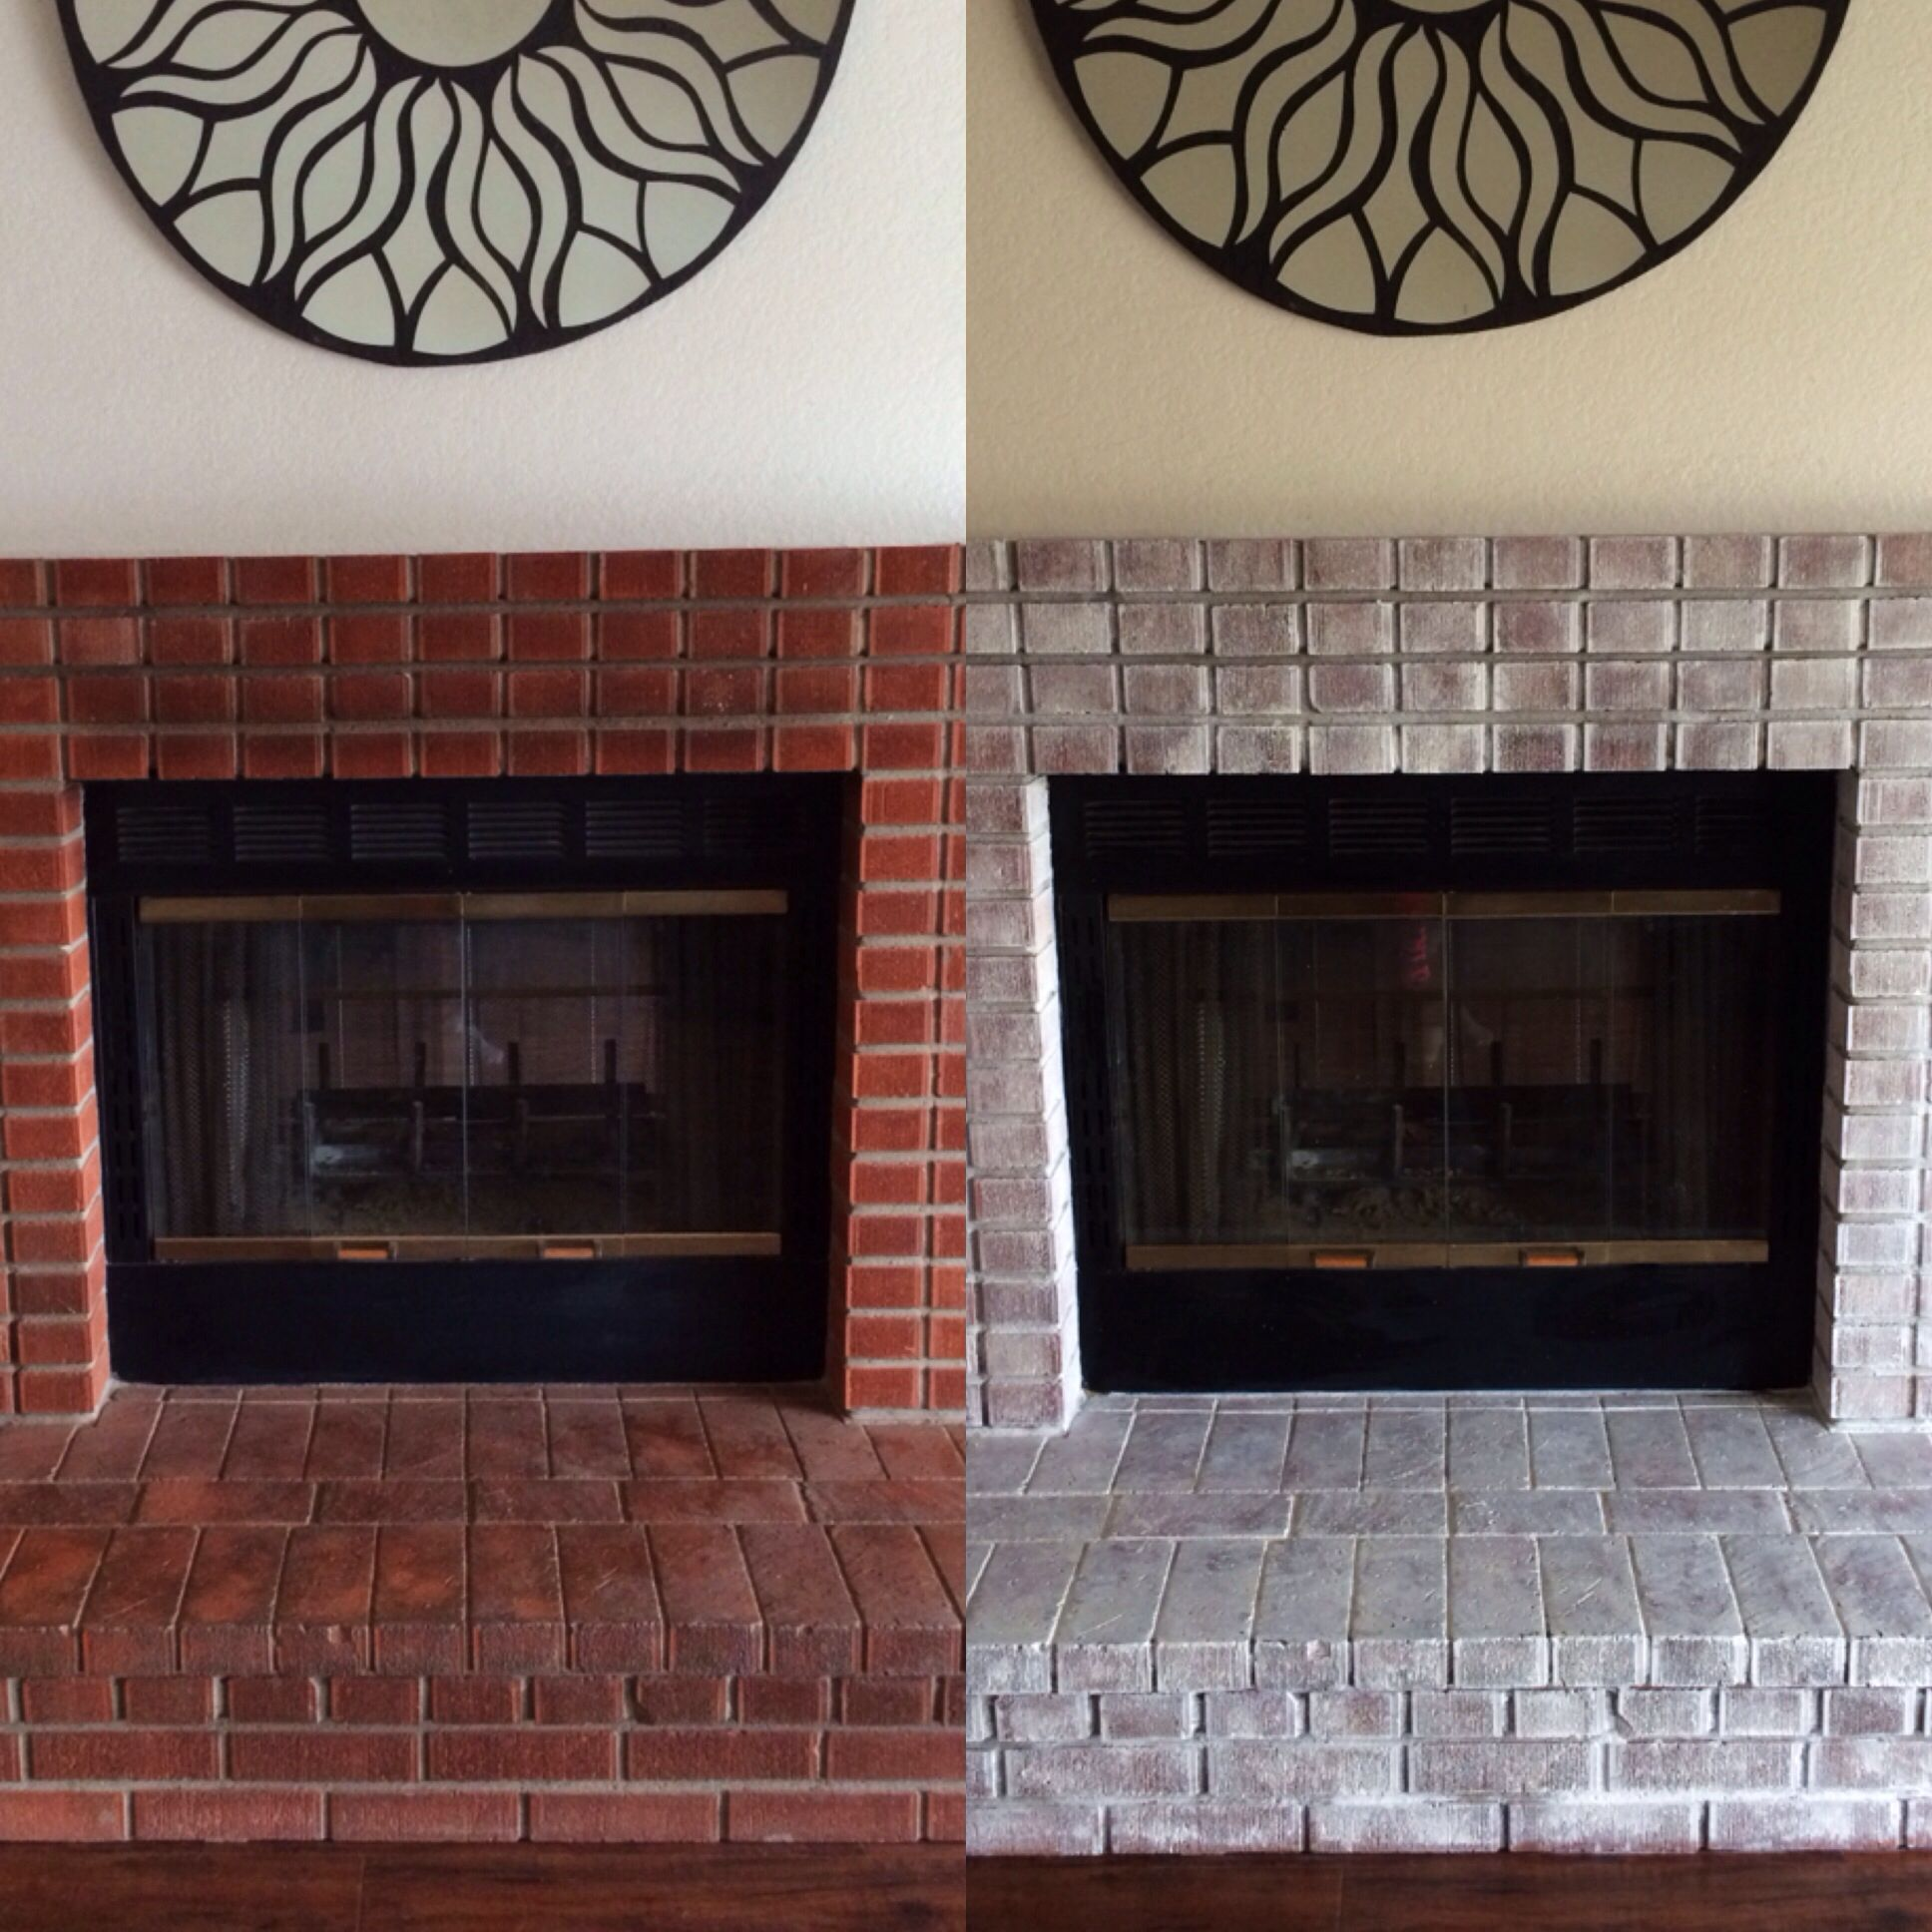 Before and after white wash.. Such an upgrade from the ugly brick!